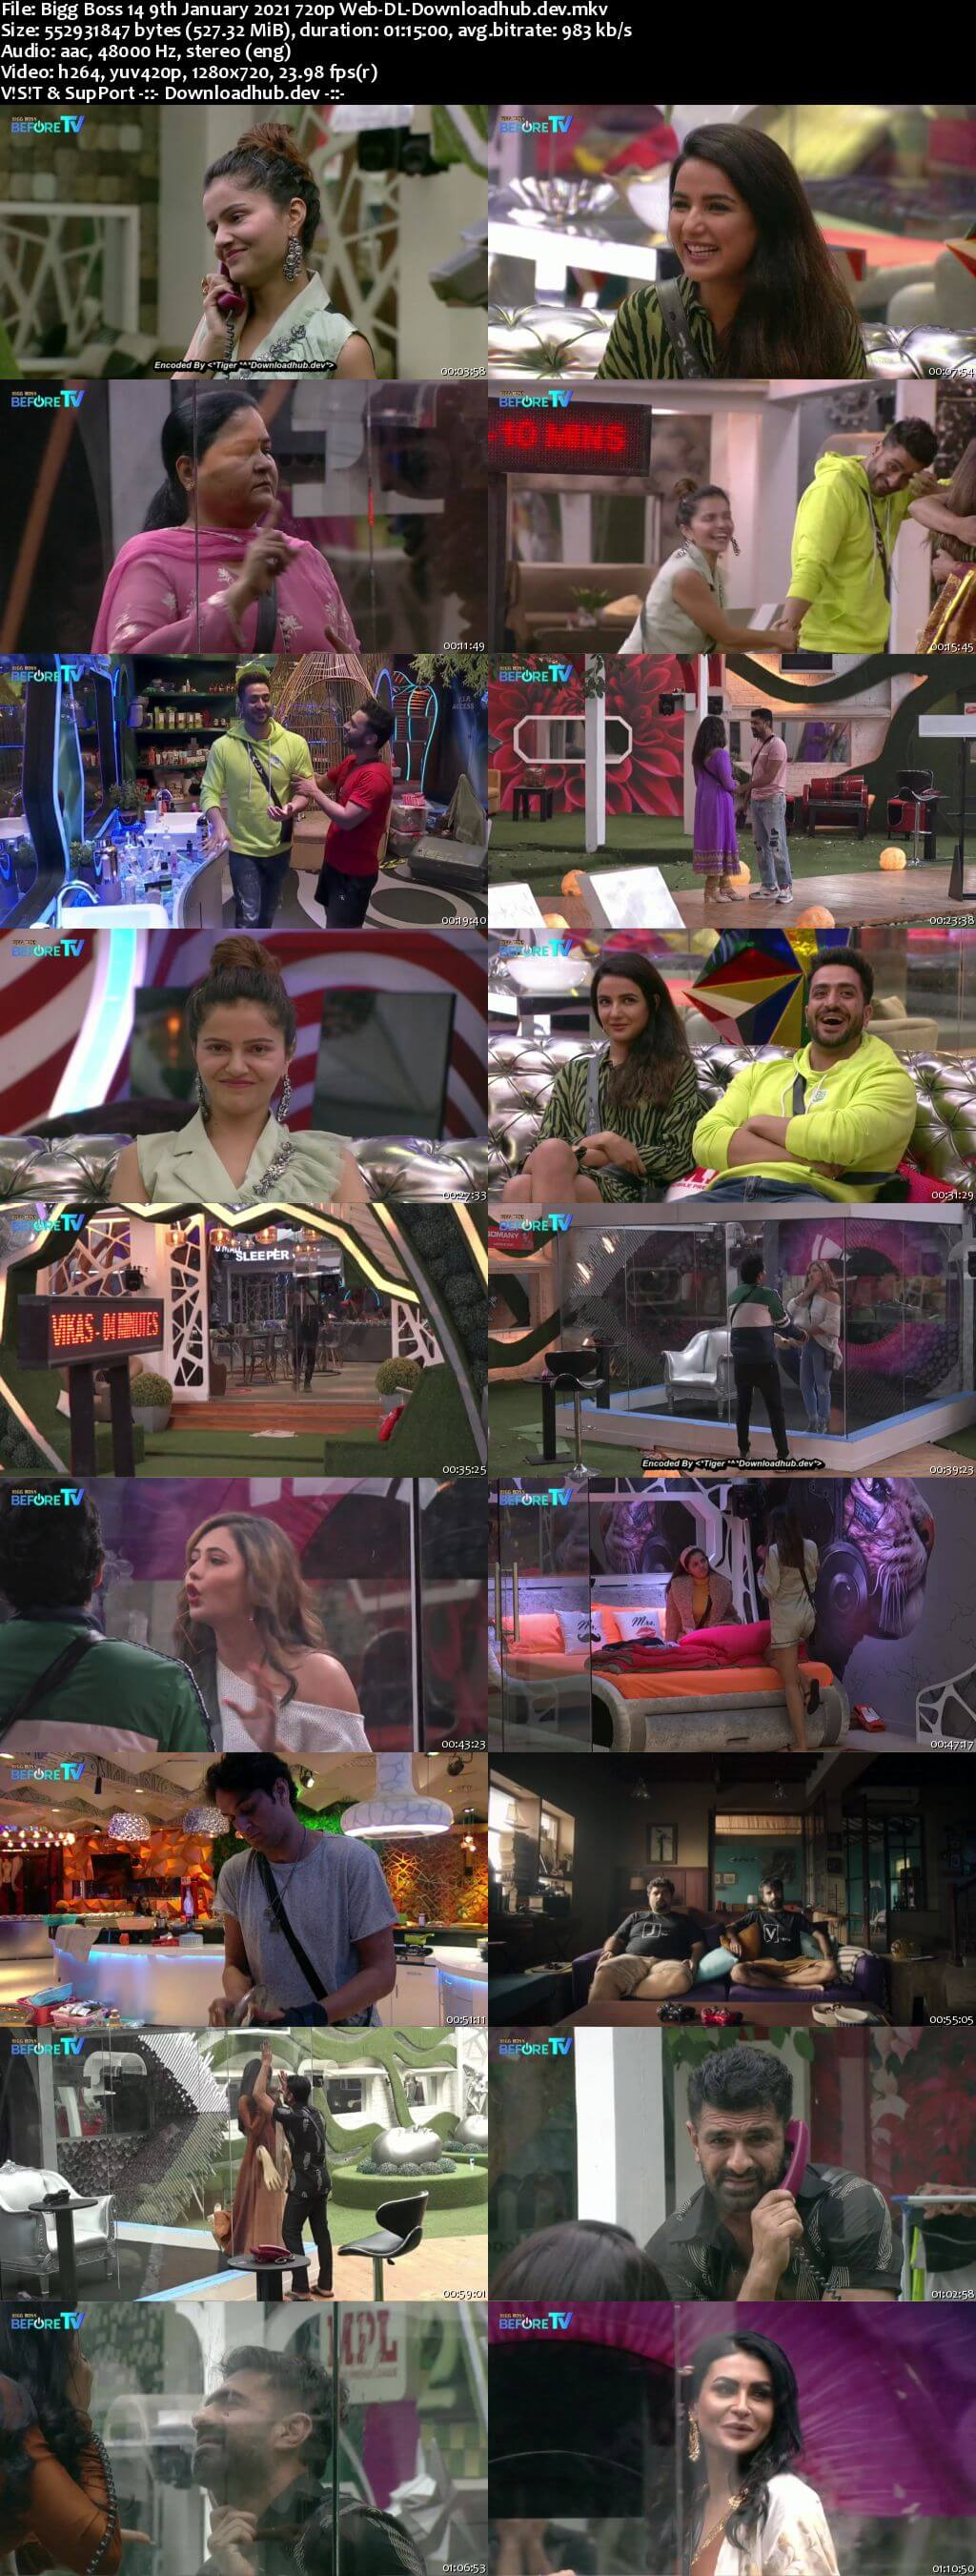 Bigg Boss 14 9th January 2021 Episode 98 720p 480p Web-DL